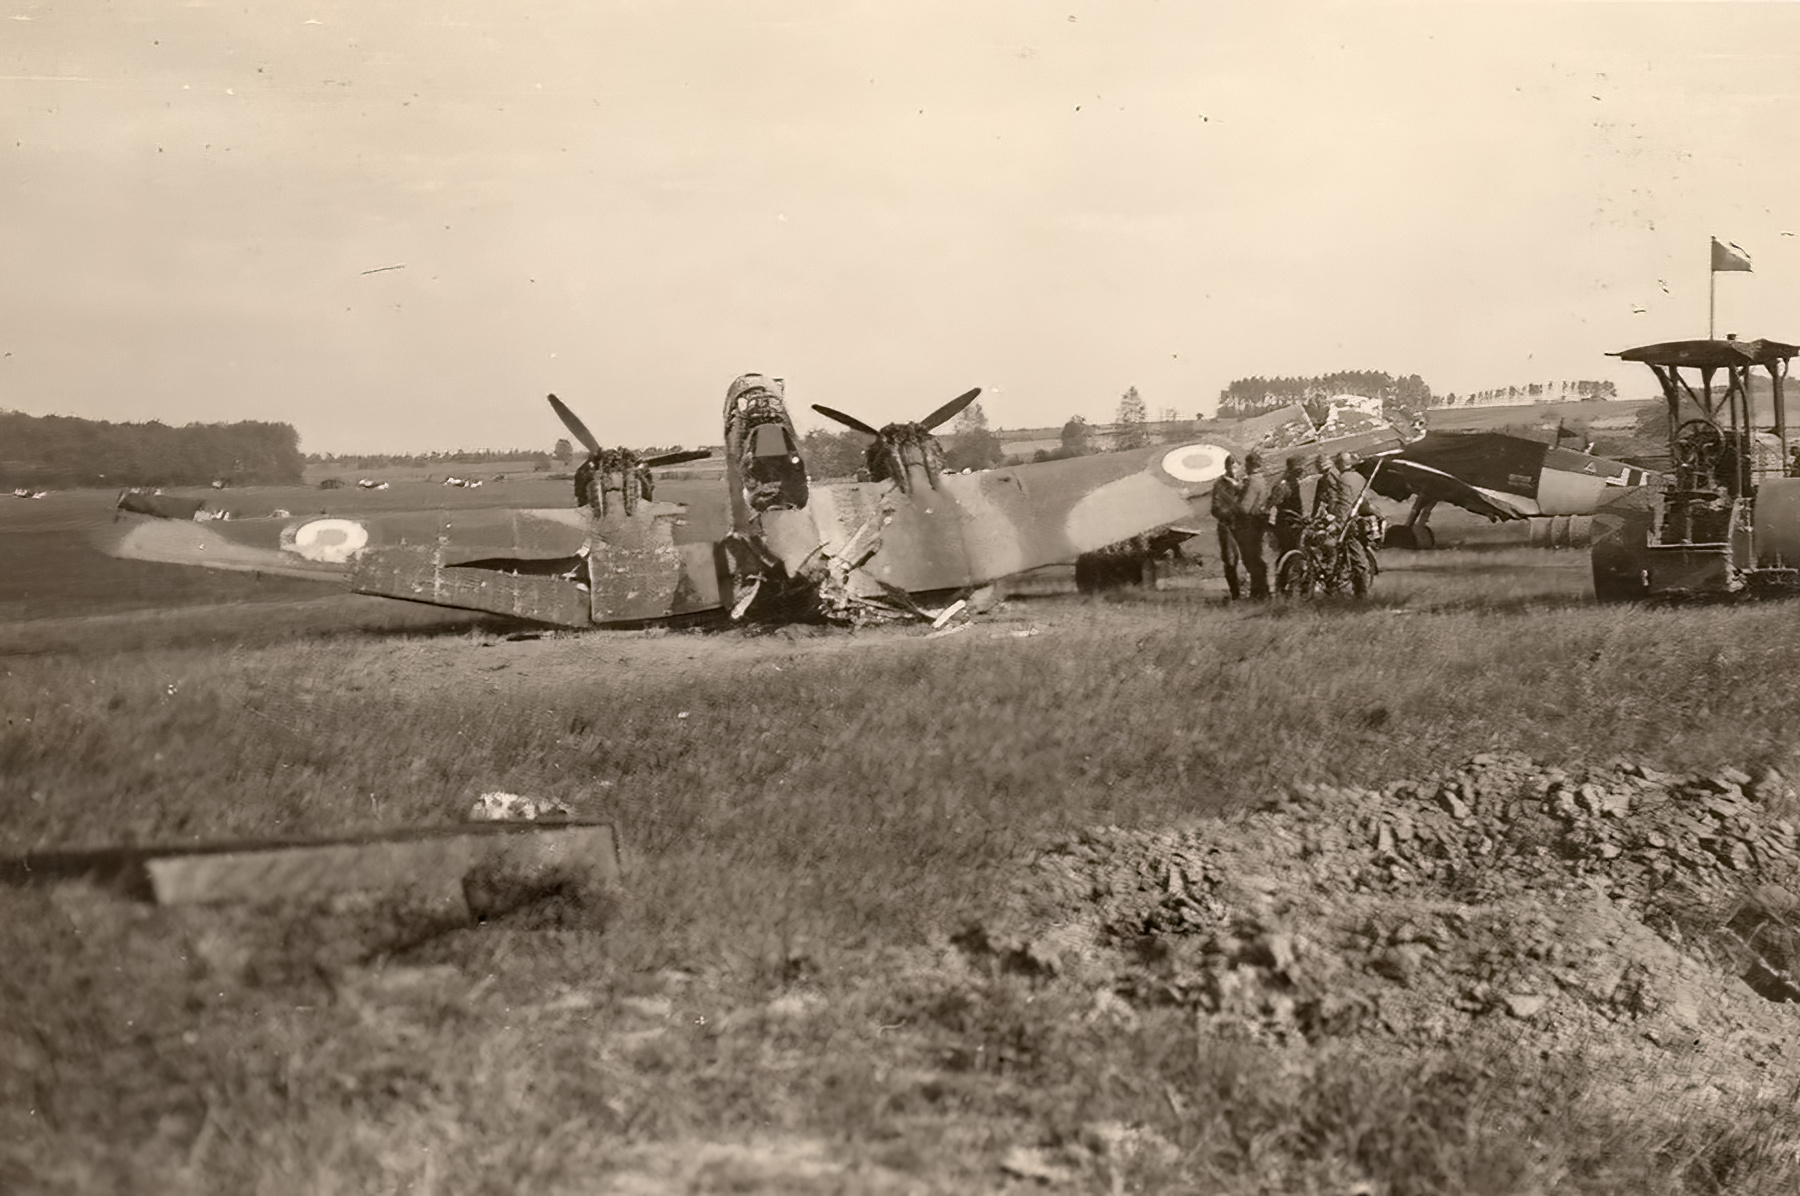 French Airforce Potez 63.11 destroyed whilst grounded France May Jun 1940 ebay 01